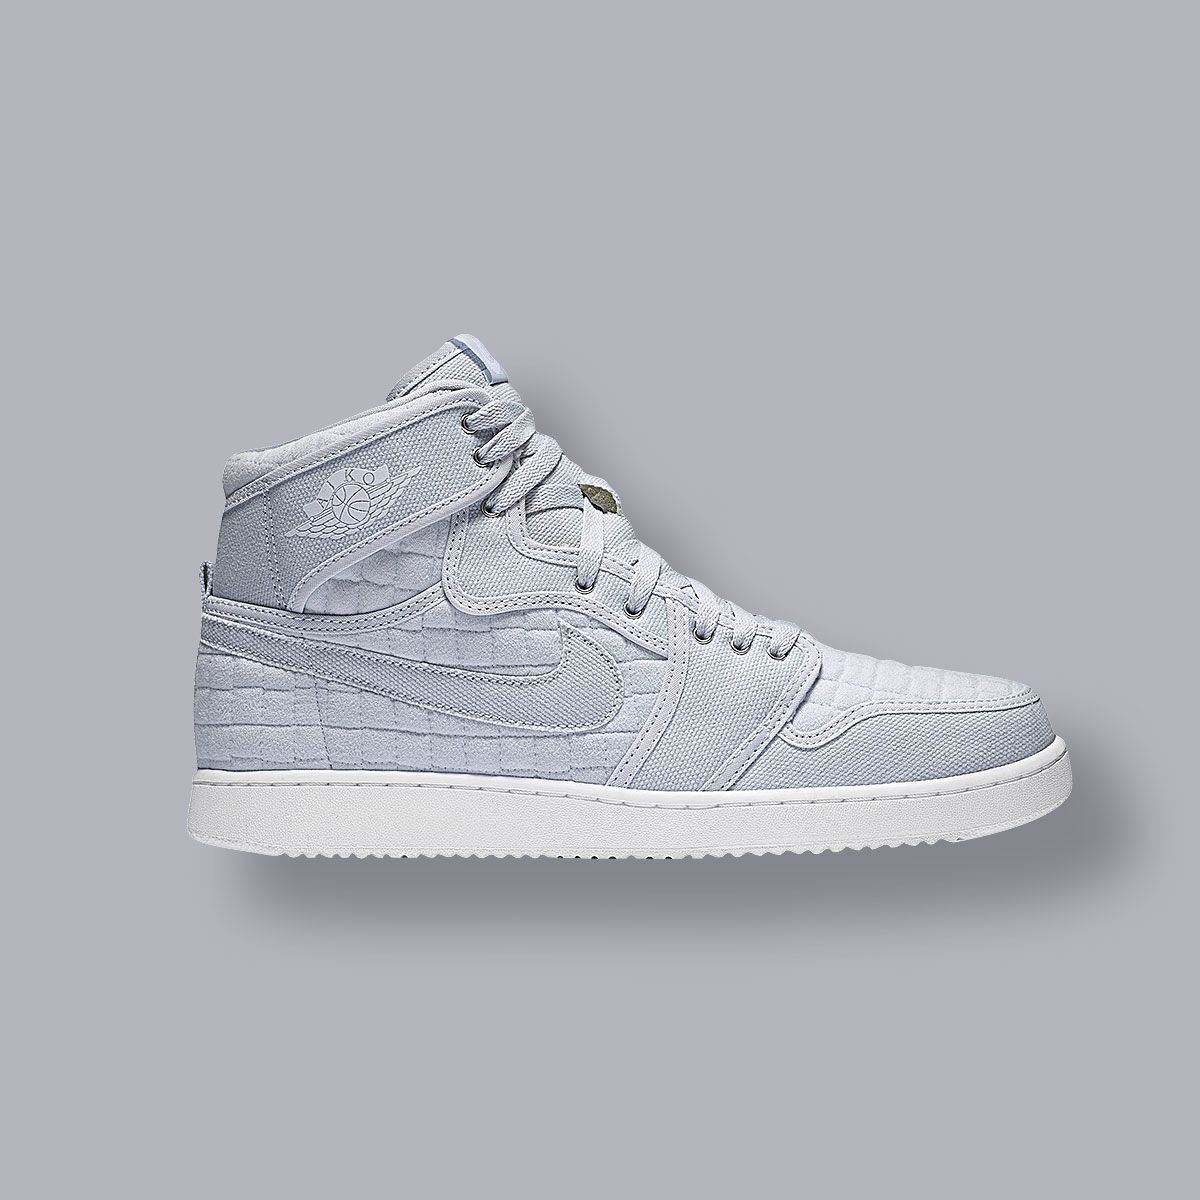 A New Twist On Classic Sneaker The Air Jordan 1 Ko Pure Platinum It Features Quilted Pattern Get Today